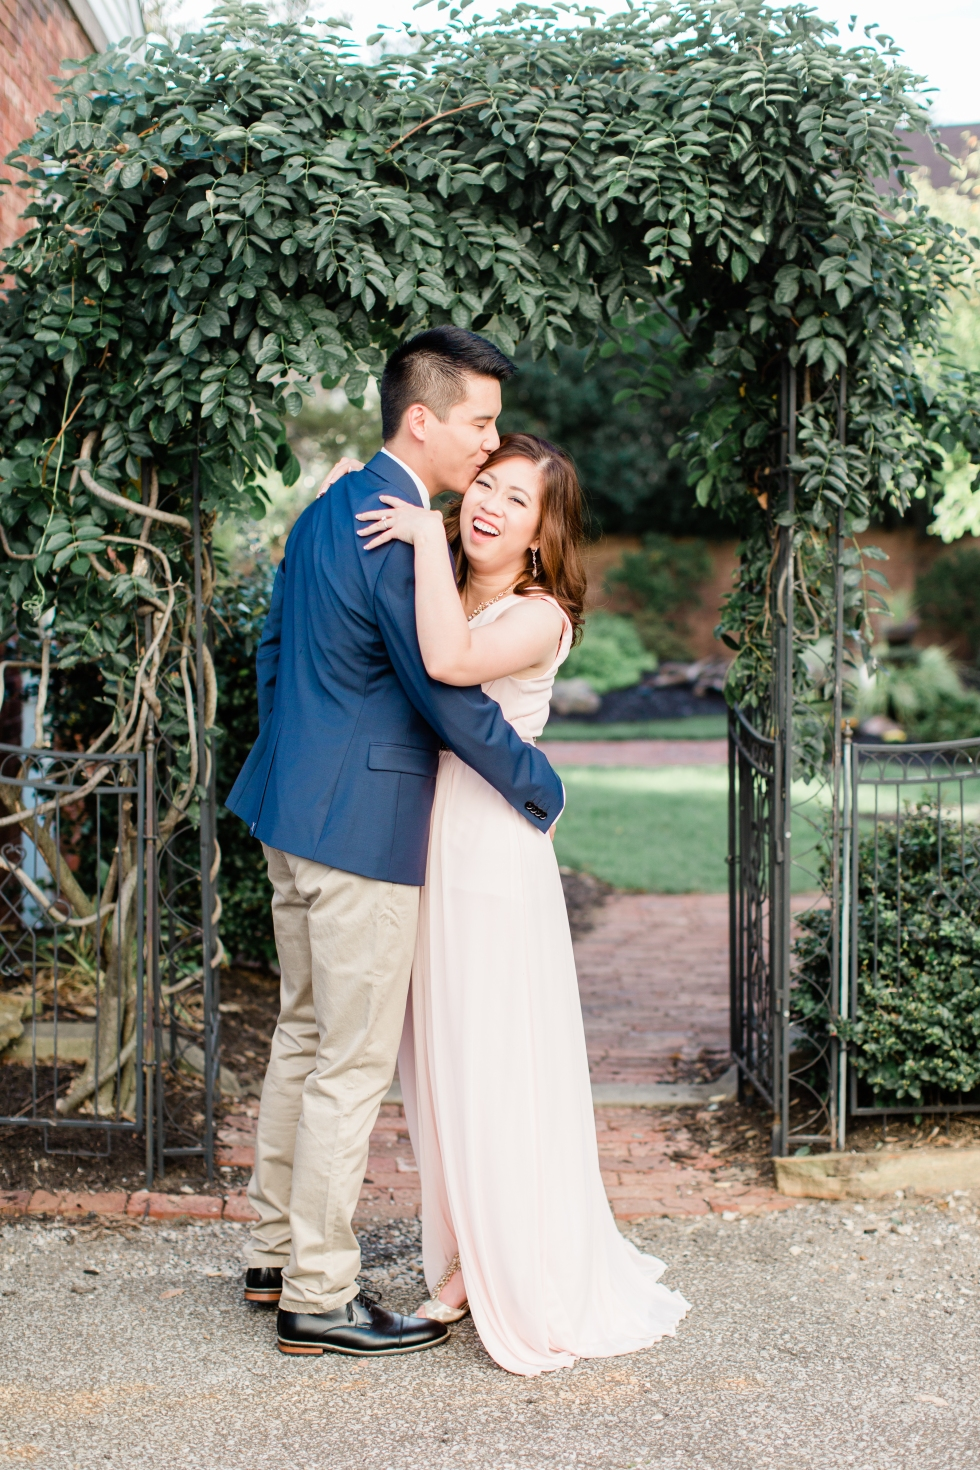 phuong_jeremy_engagements_2018_66